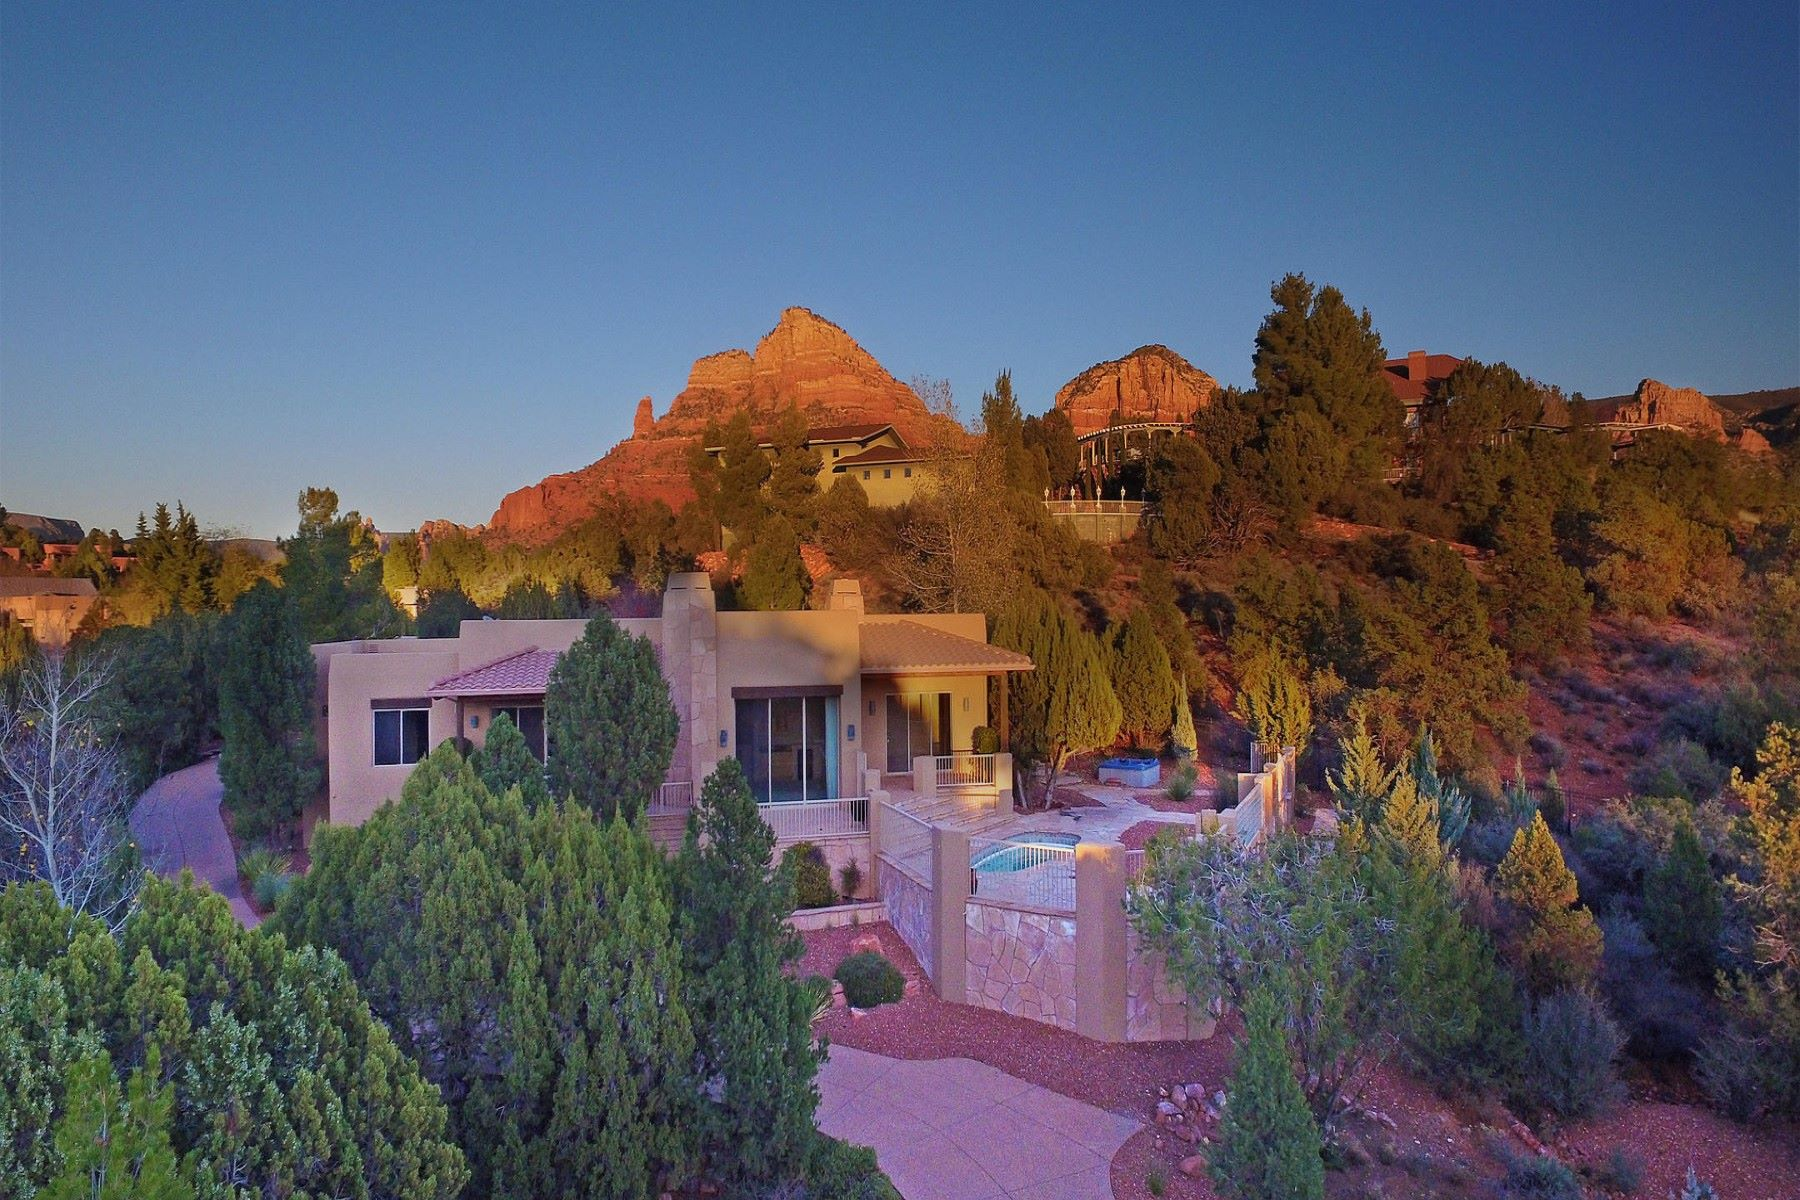 단독 가정 주택 용 매매 에 Gorgeous home with captivating views 45 Scenic Drive Sedona, 아리조나, 86336 미국